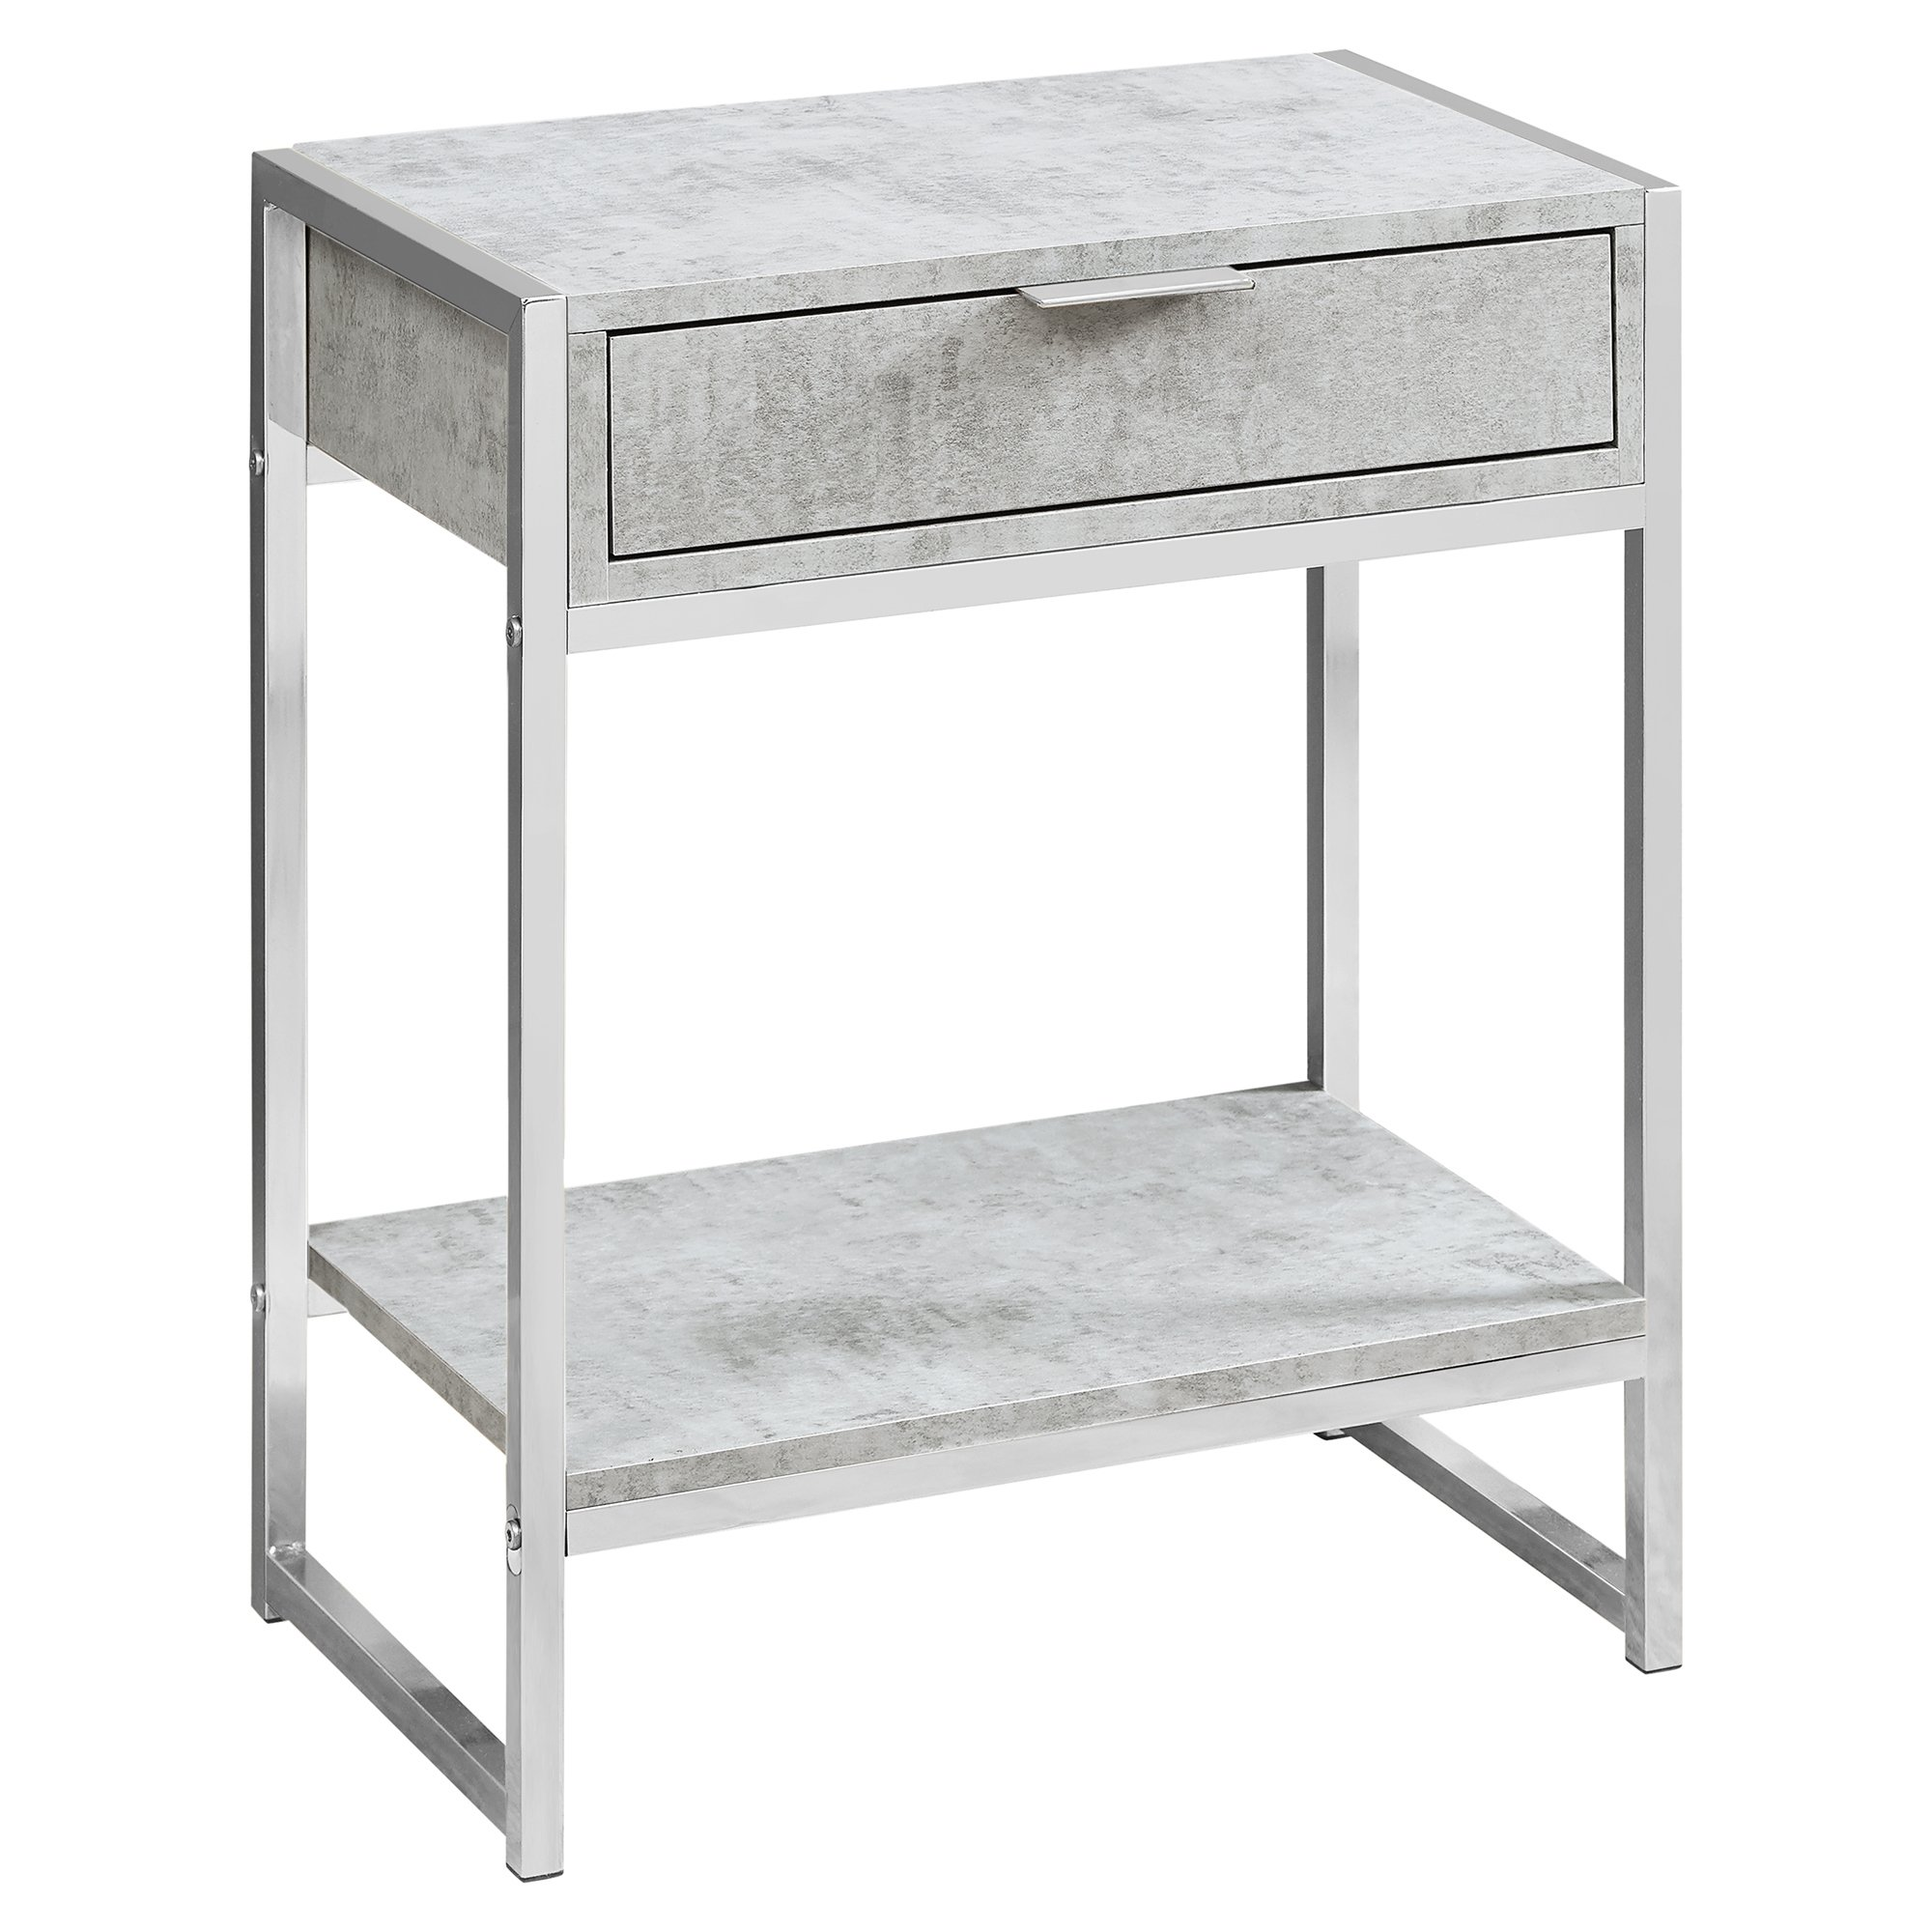 amazing monarch specialties accent table grey cement chrome metal large marble top coffee plastic cloth small wooden with drawers dining set pier one shower curtains chair design